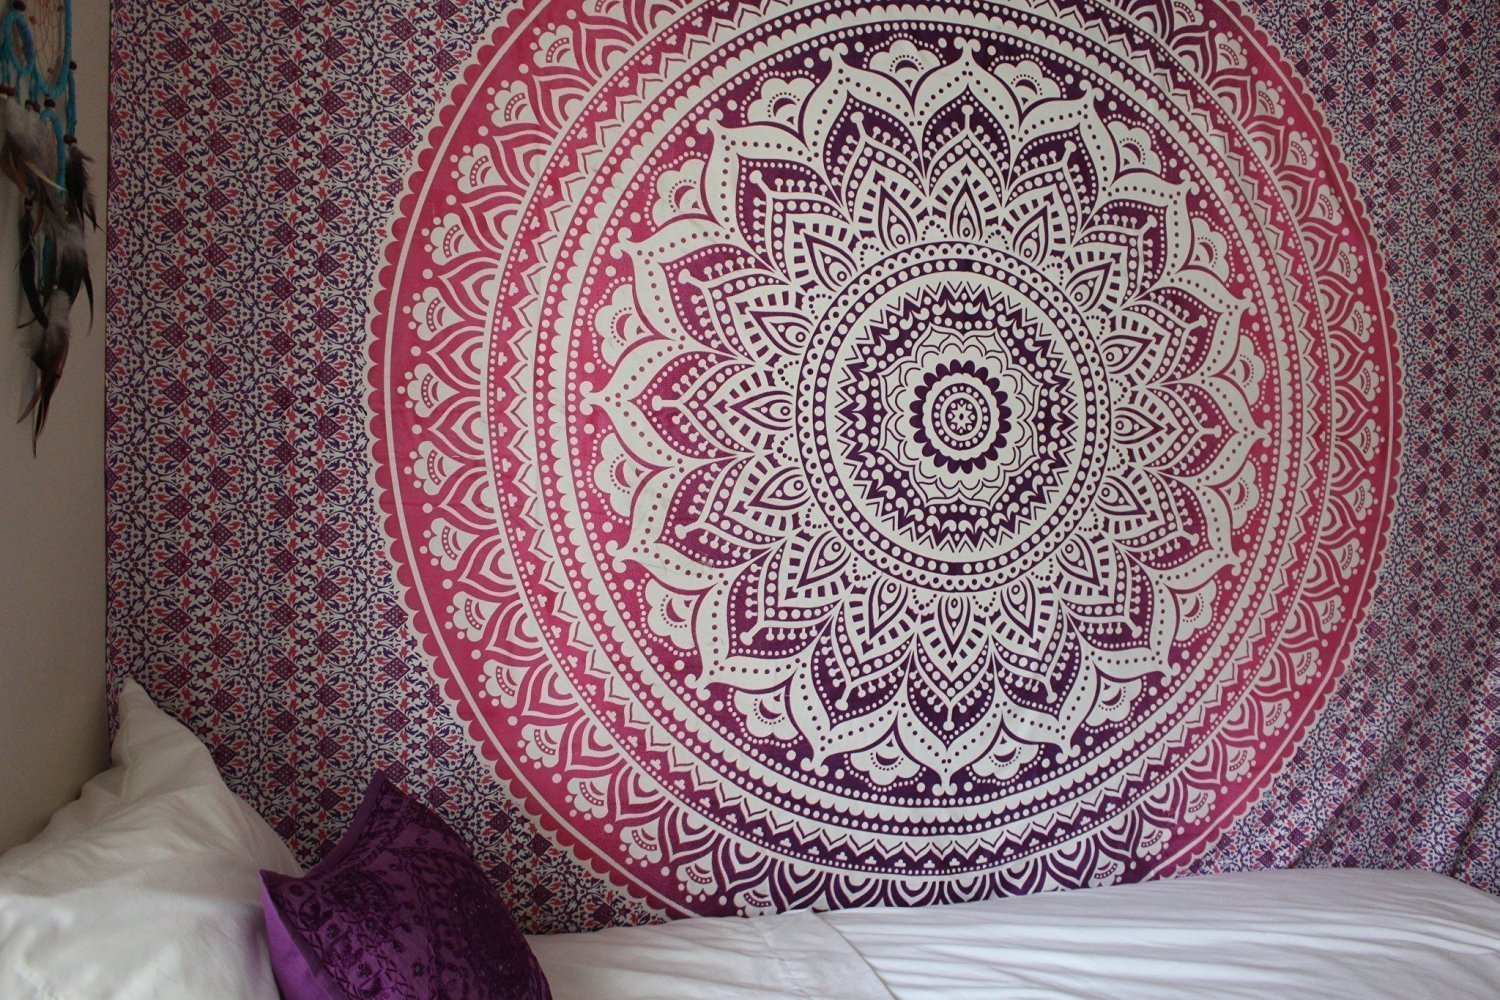 Indian Traditional Mandala Hippie Wall Hanging Cotton Tapestry Ombre Bohemian Bedspread (Light Green, Twin(54x72 Inches)(140x185 Cm)) Bless International BLESSIT97